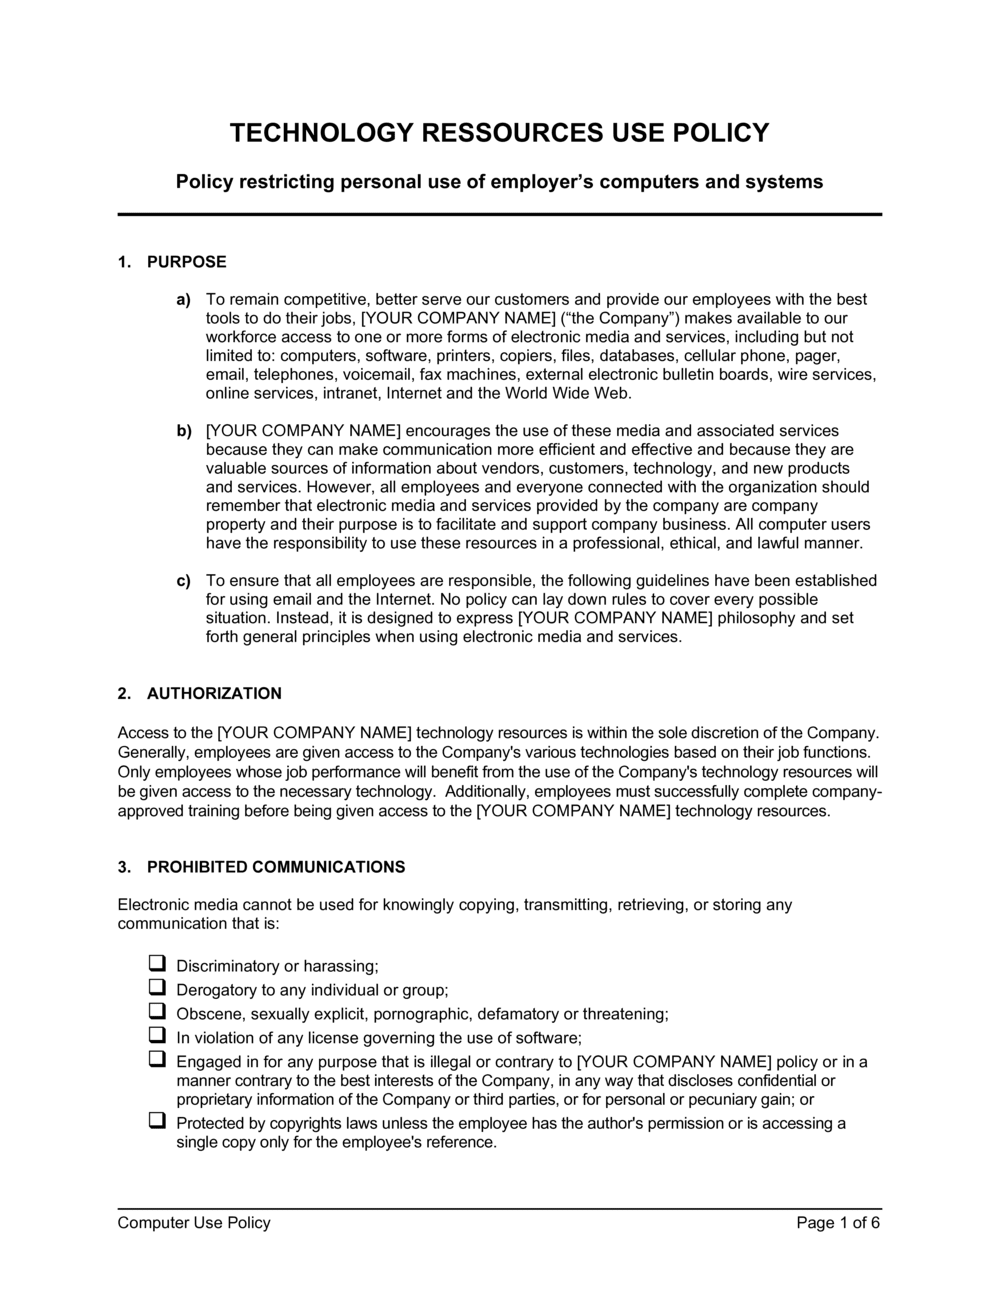 Business-in-a-Box's Computer Use Policy Template